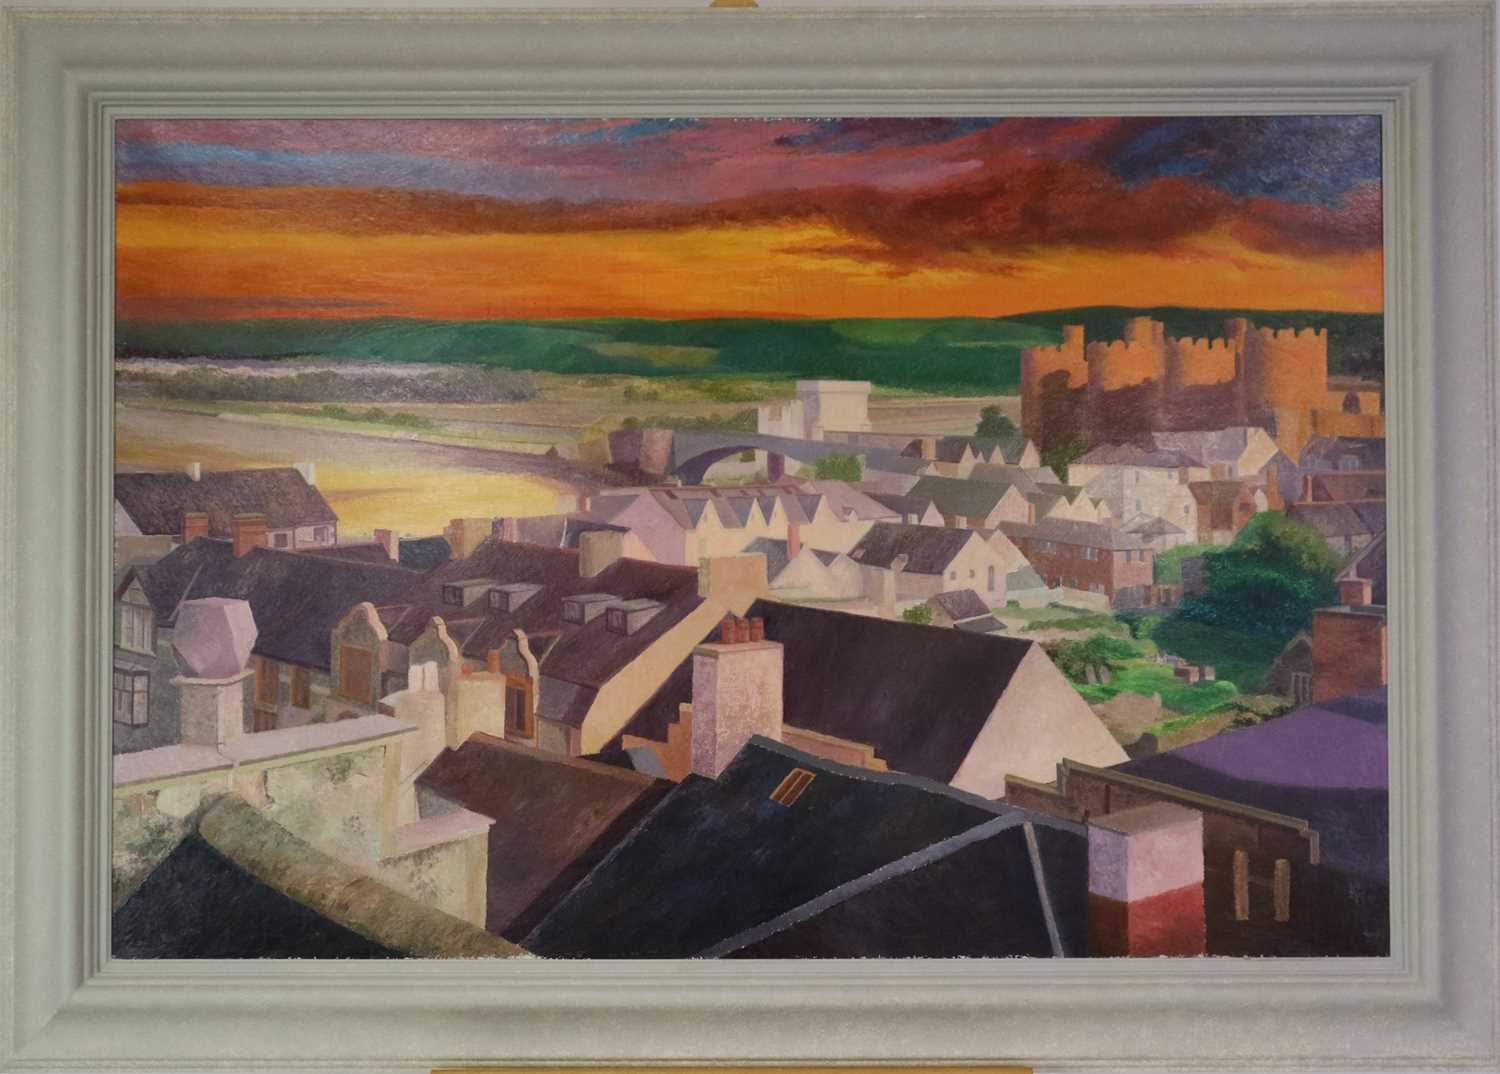 Denby Sweeting (1936-2020) Conwy Castle at Sunset from Across the Rooftops - Image 2 of 3